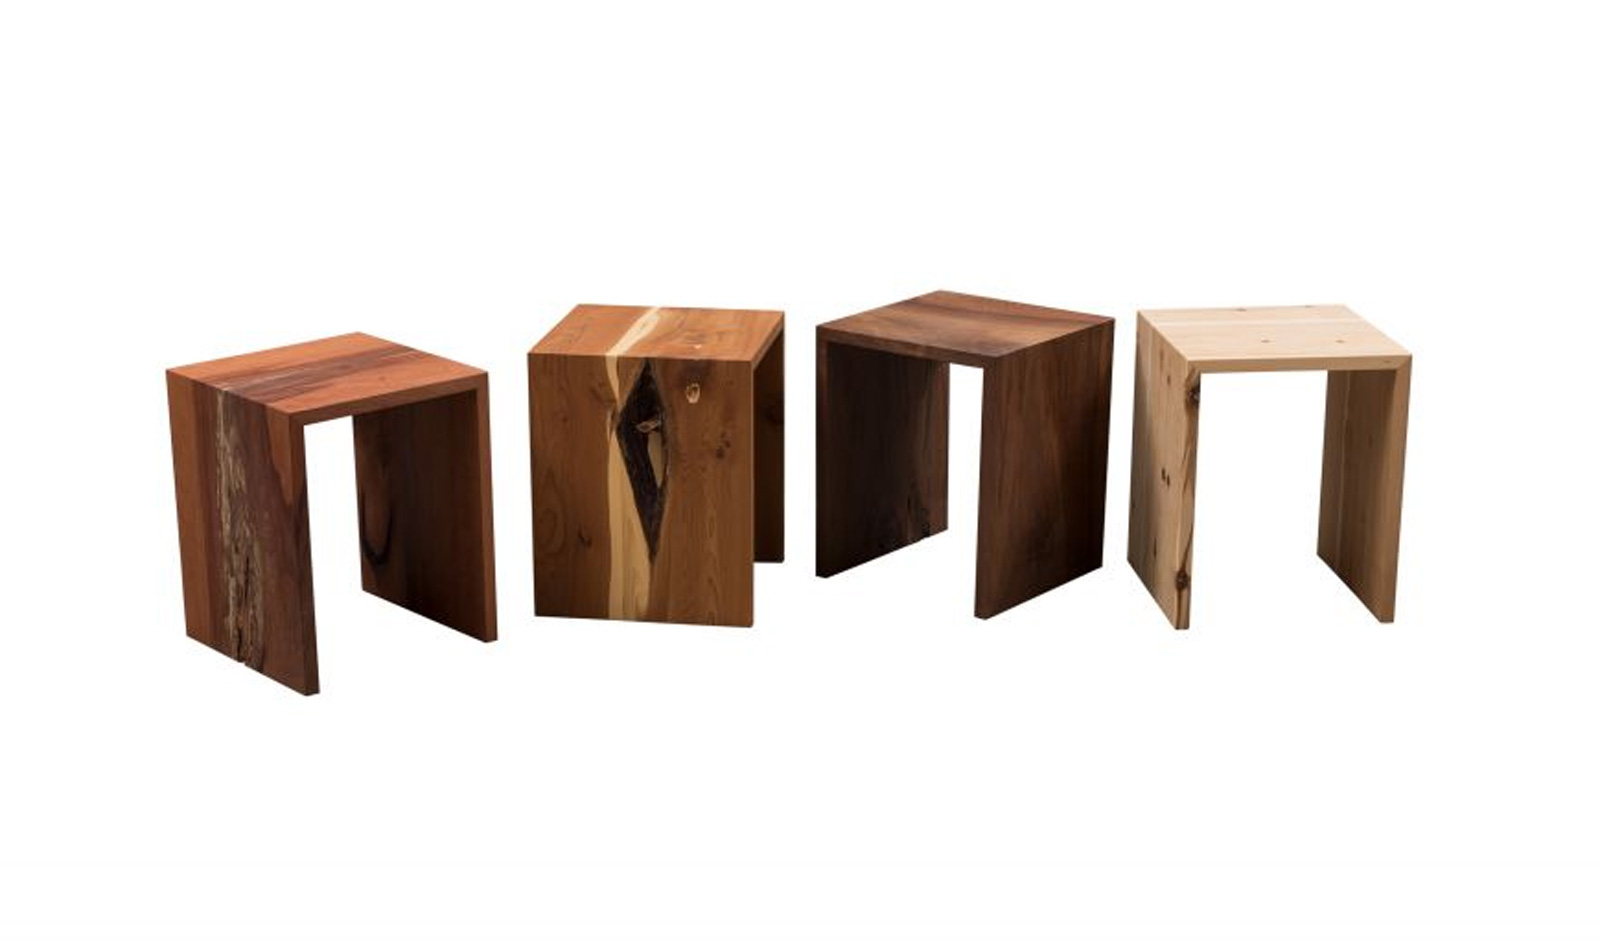 Design stool or side table made of solid wood from the monastery carpentry Fischingen, Swiss Made